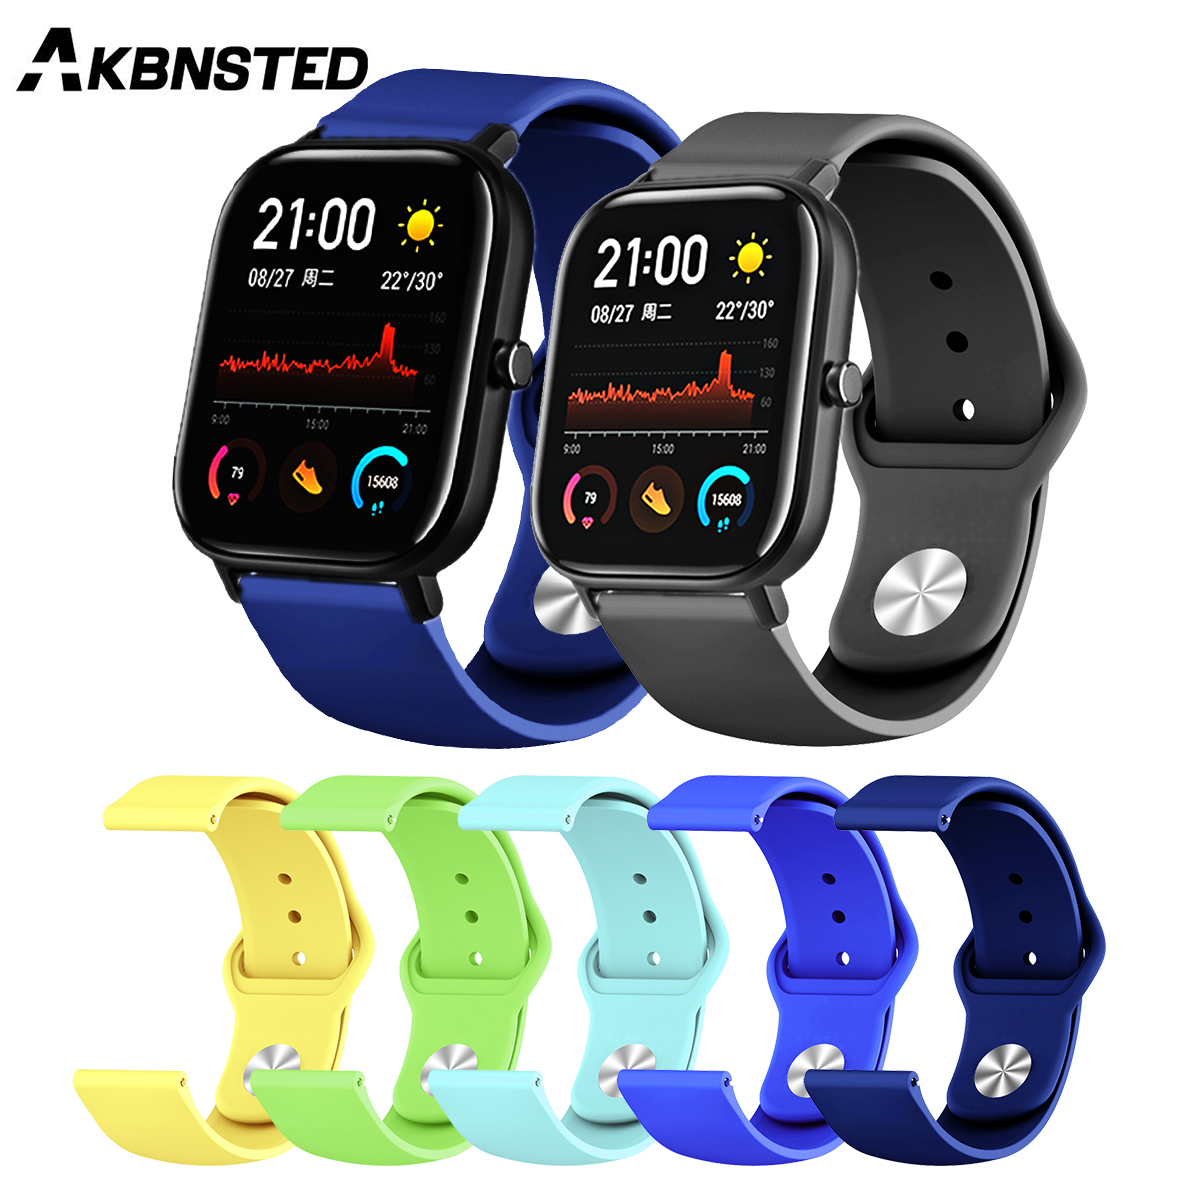 AKBNSTED 20/22MM Colorful Silicone Smart Watch Band For Xiaomi Huami Amazfit GTS/GTR 47/42MM/Bip Wristband Replace Accessories